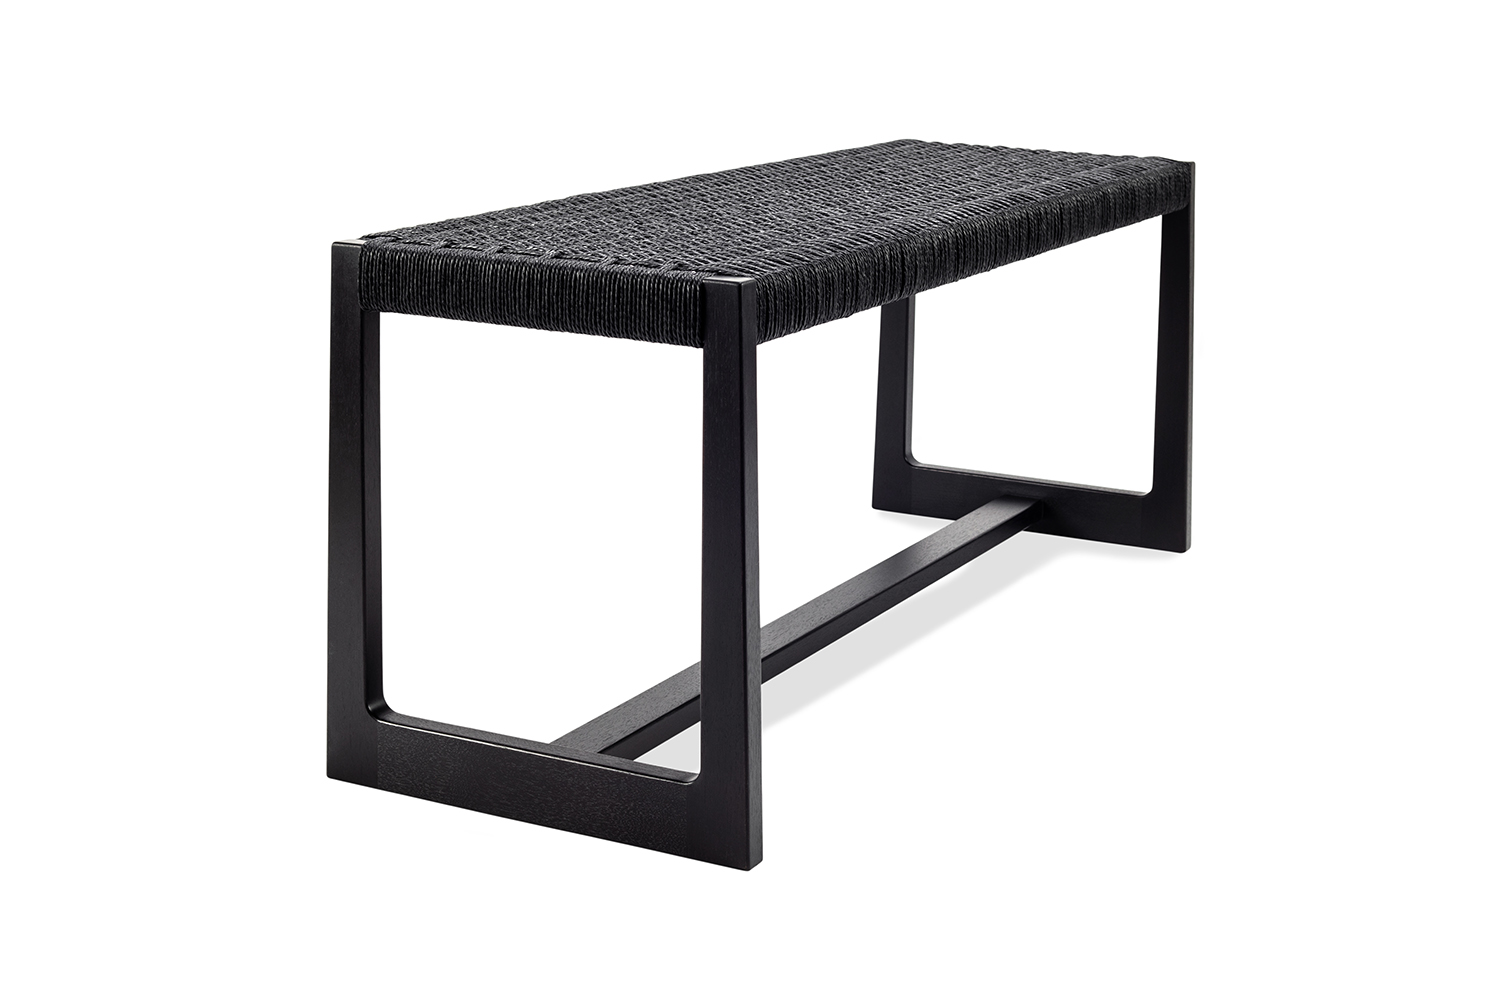 Long and low Matteawan stool in ebonized walnut and black Danish cord